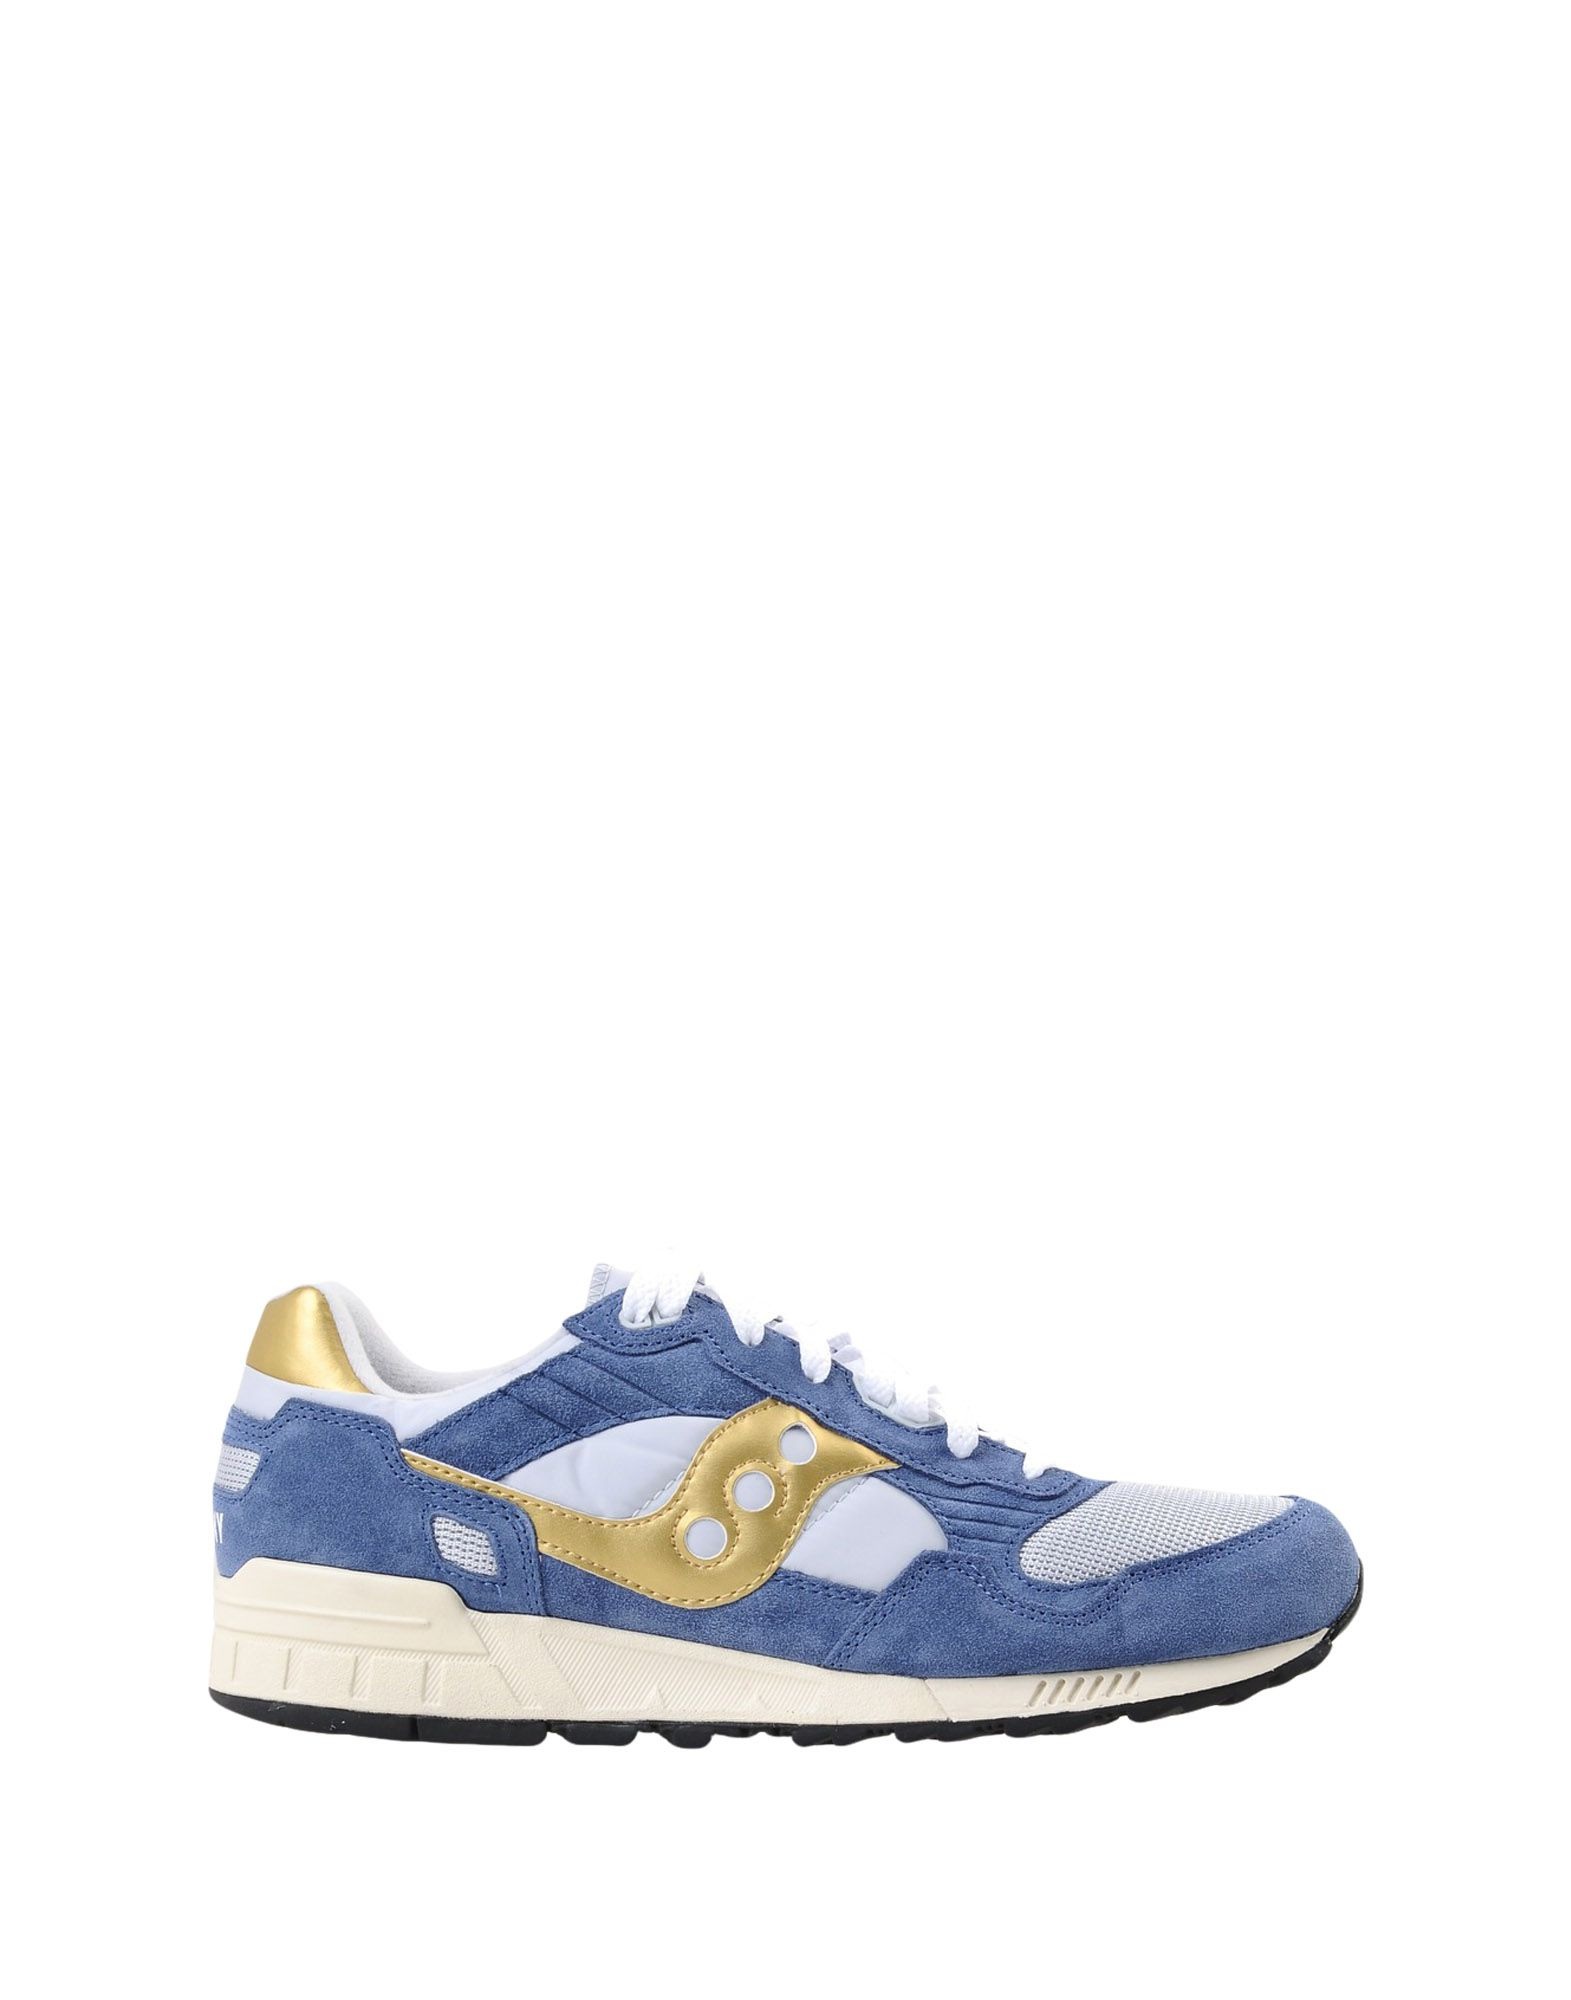 Sneakers Saucony Shadow 5000 Vintage - Homme - Sneakers Saucony sur